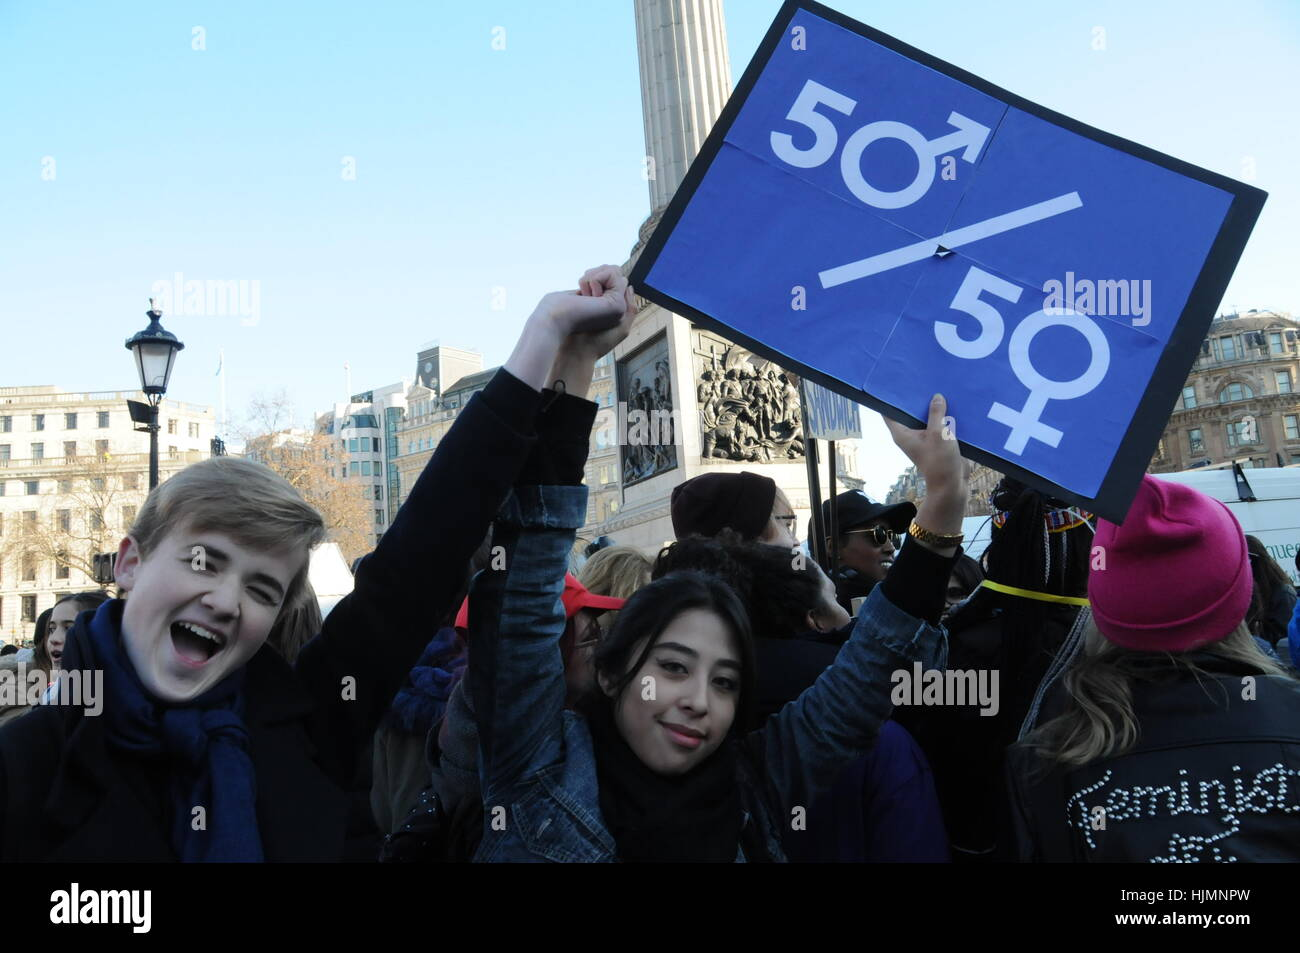 Protesters at the 2017 Women's March against  the US President, Donald Trump, in London's Trafalgar Square. - Stock Image